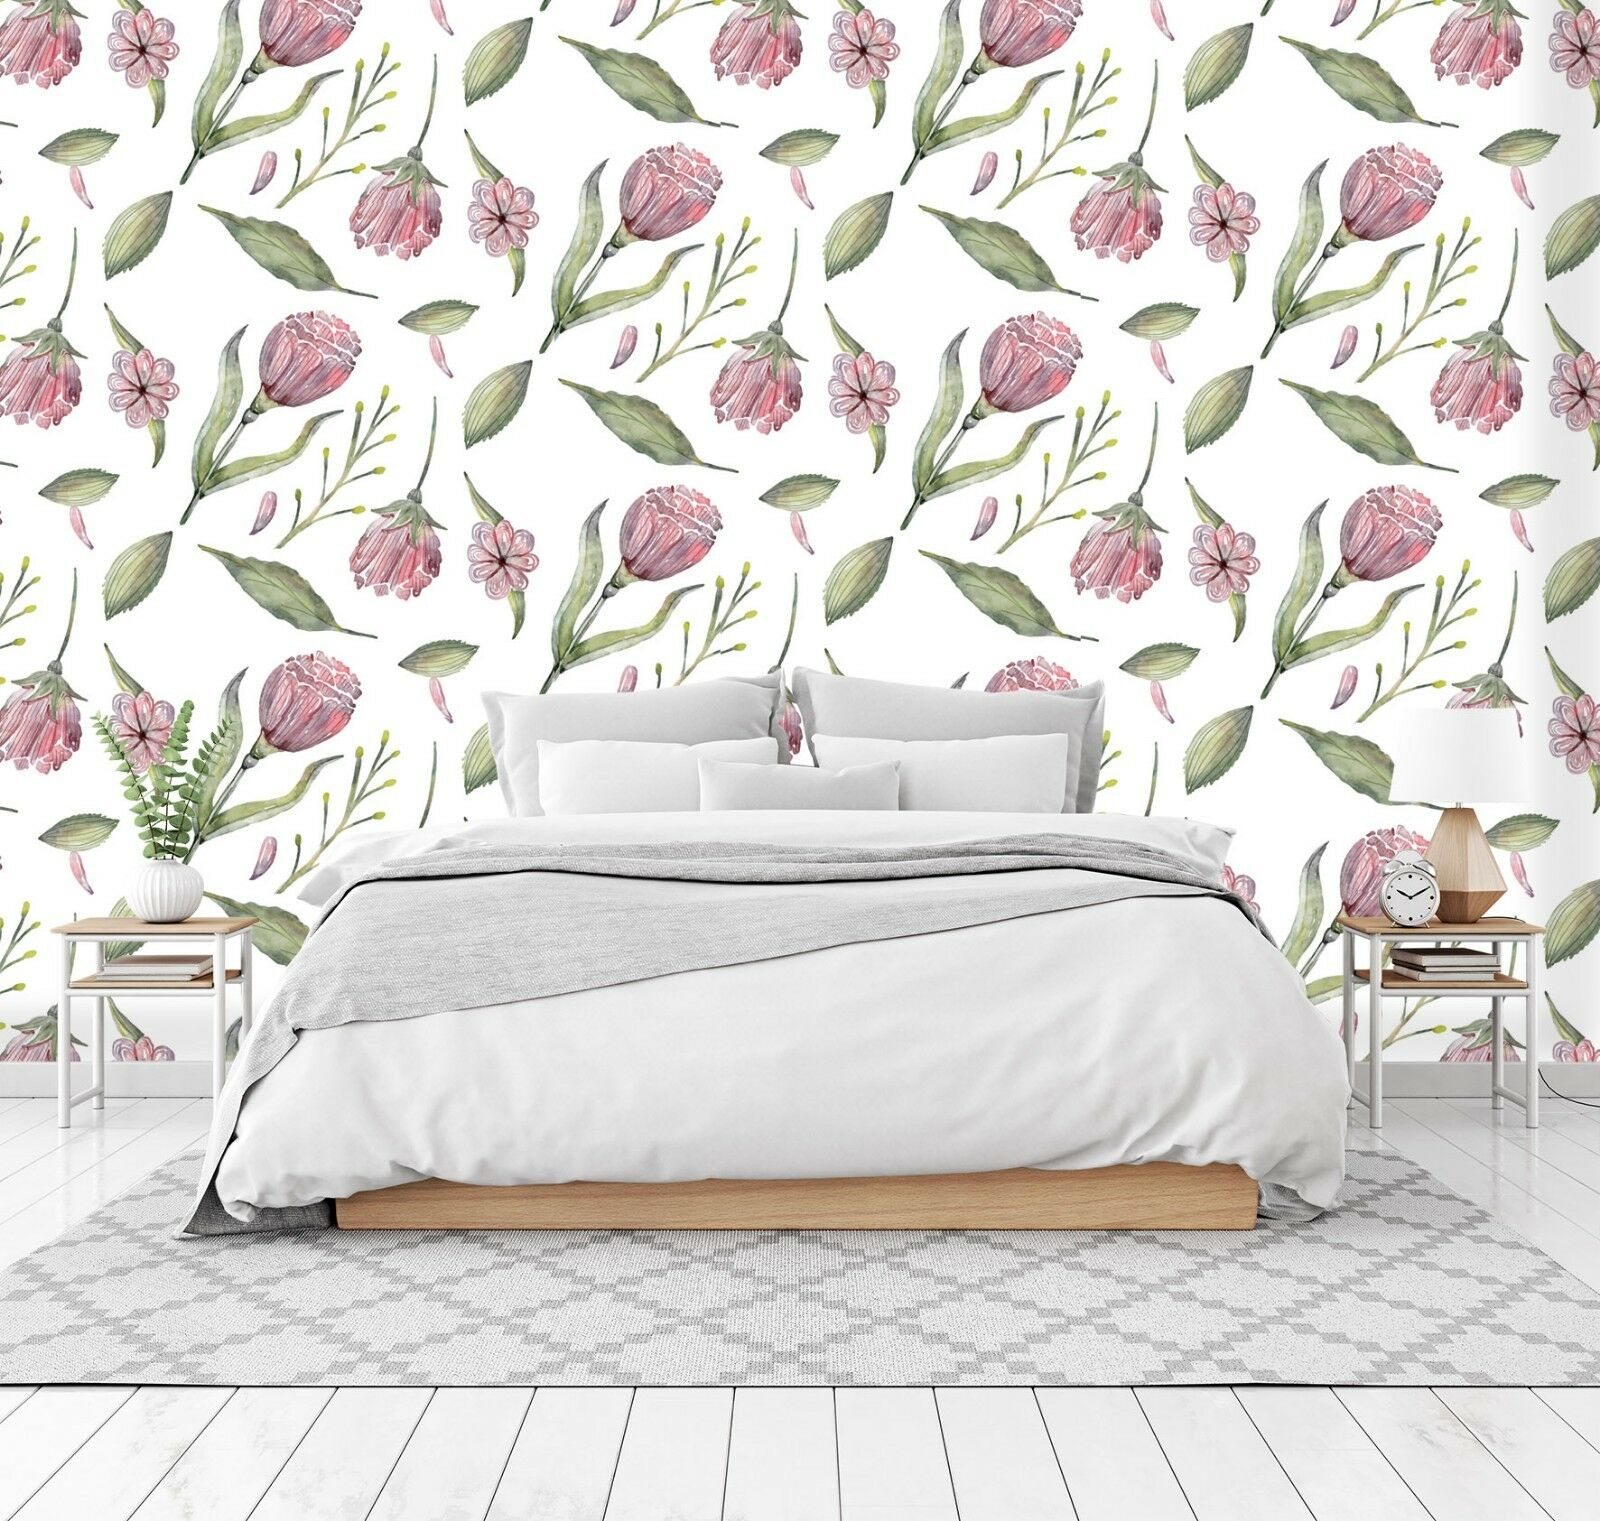 3D Beautiful Flowers 53 Wall Paper Wall Print Decal Wall Deco Indoor Wall Murals